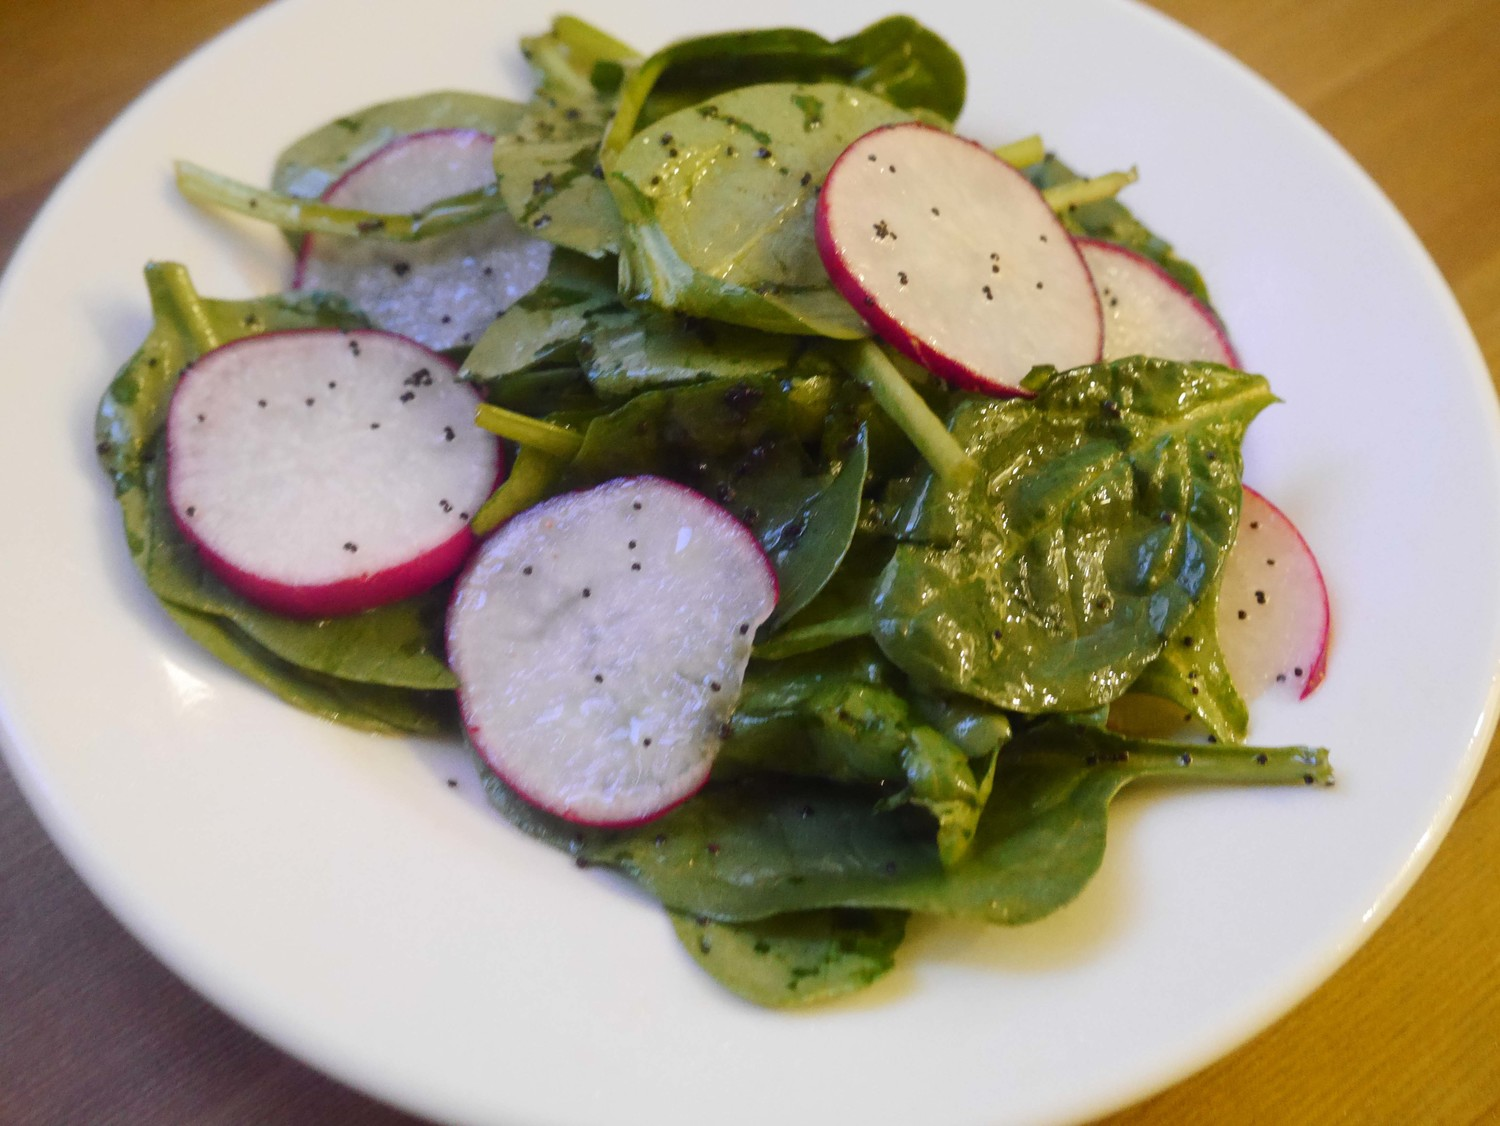 Spinach & Radish Salad with Lemon-Poppy Dressing